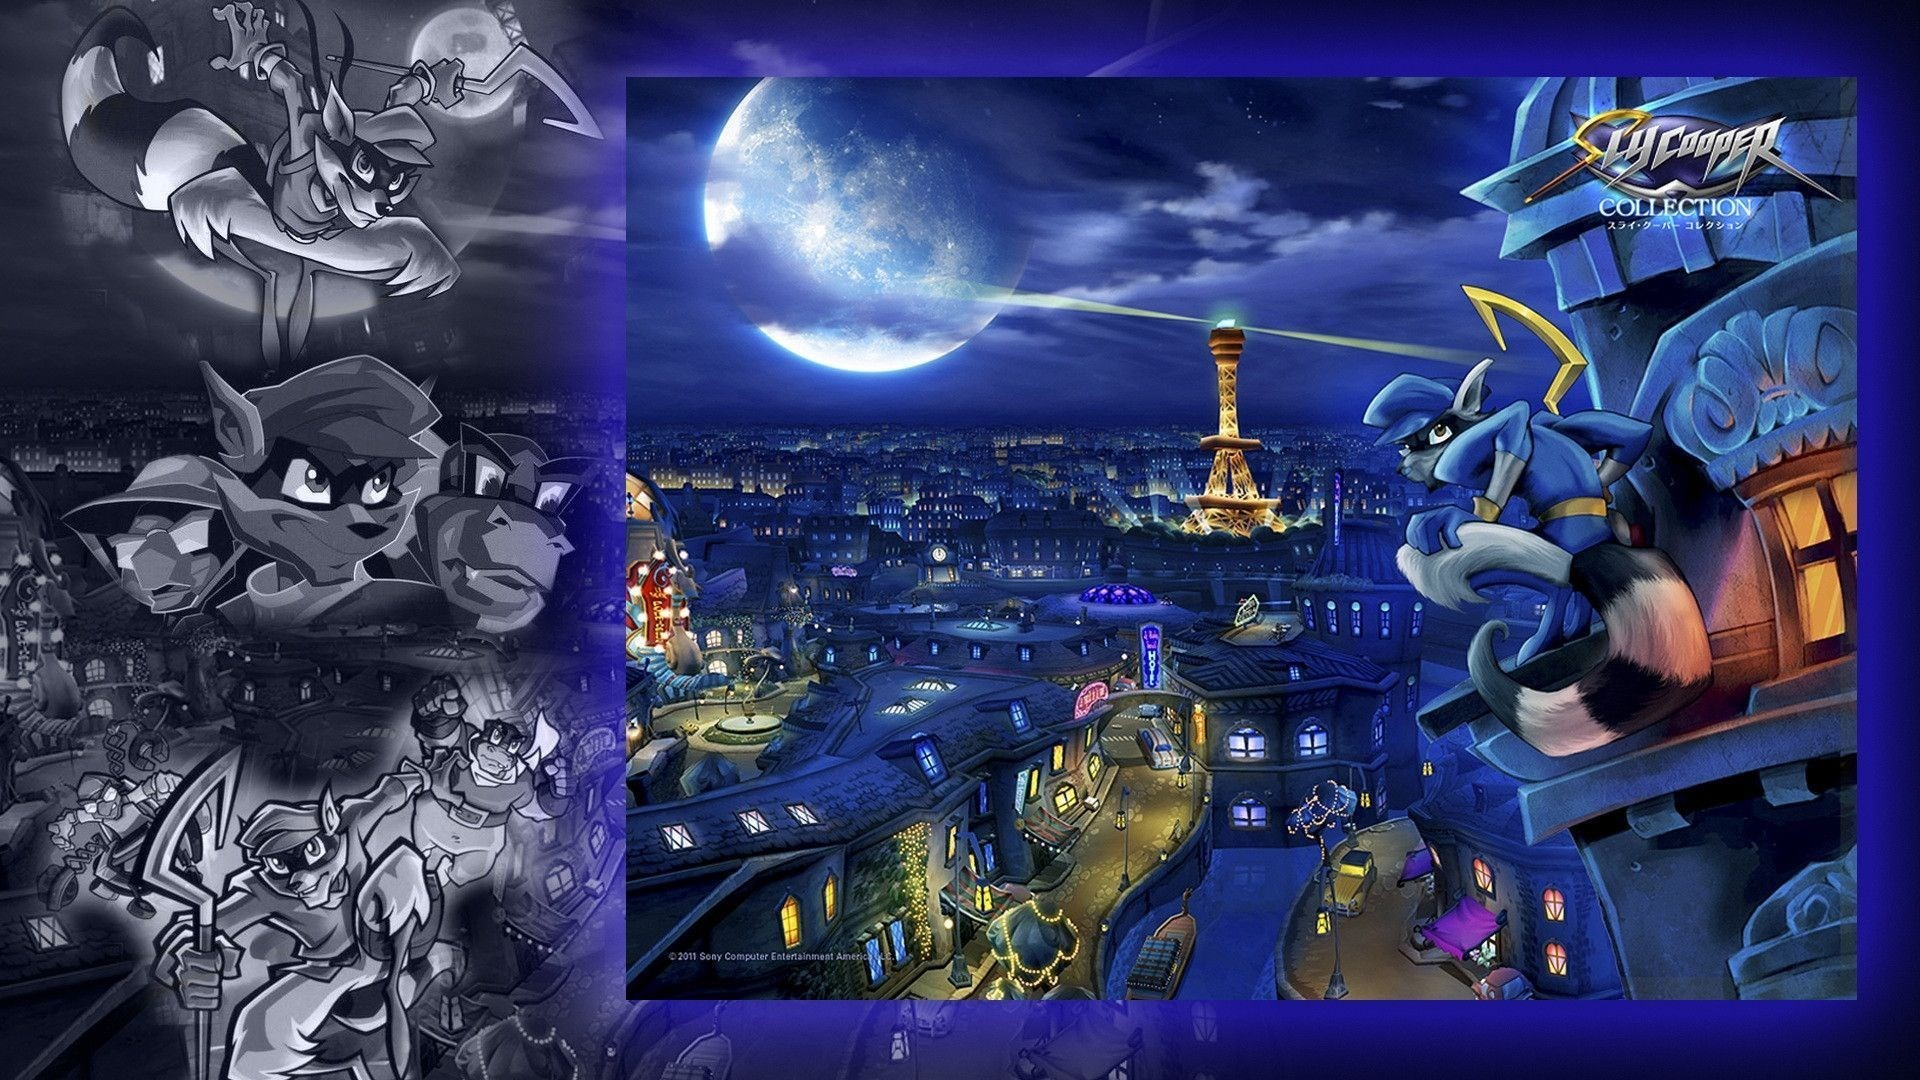 sly cooper thieves in time iphone wallpaper …